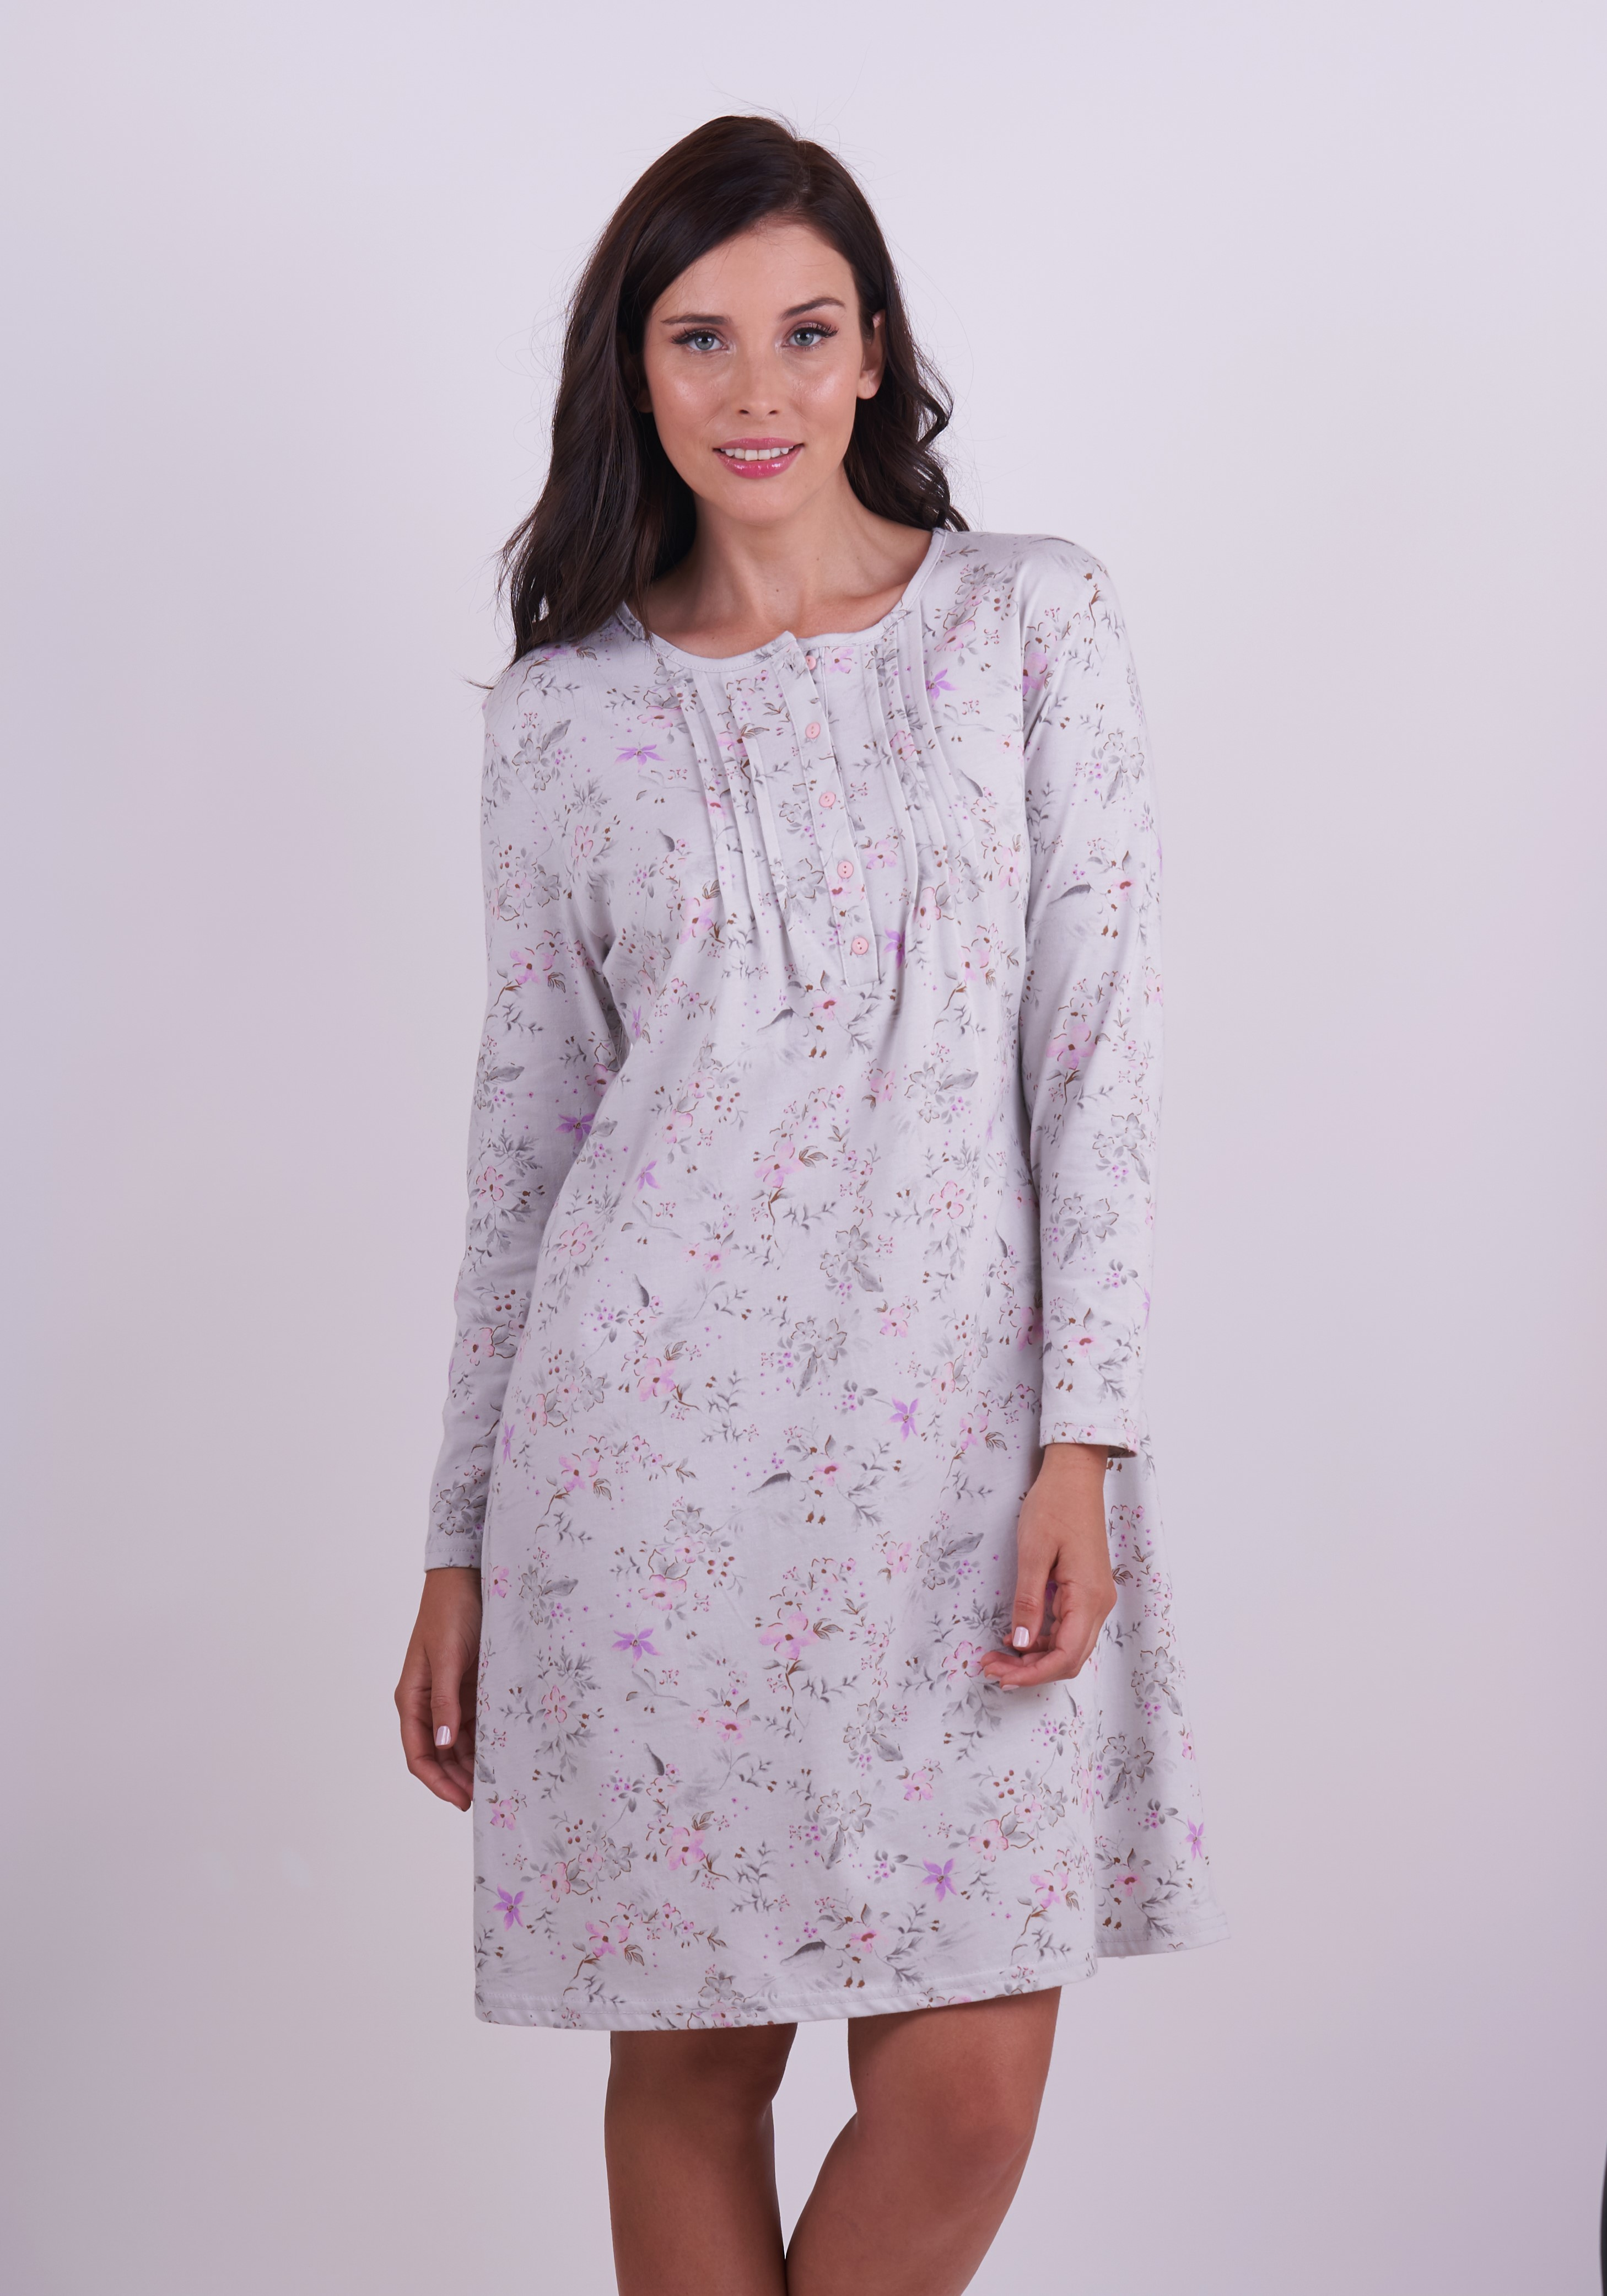 Stretch Cotton Nightgown- With Long Sleeve